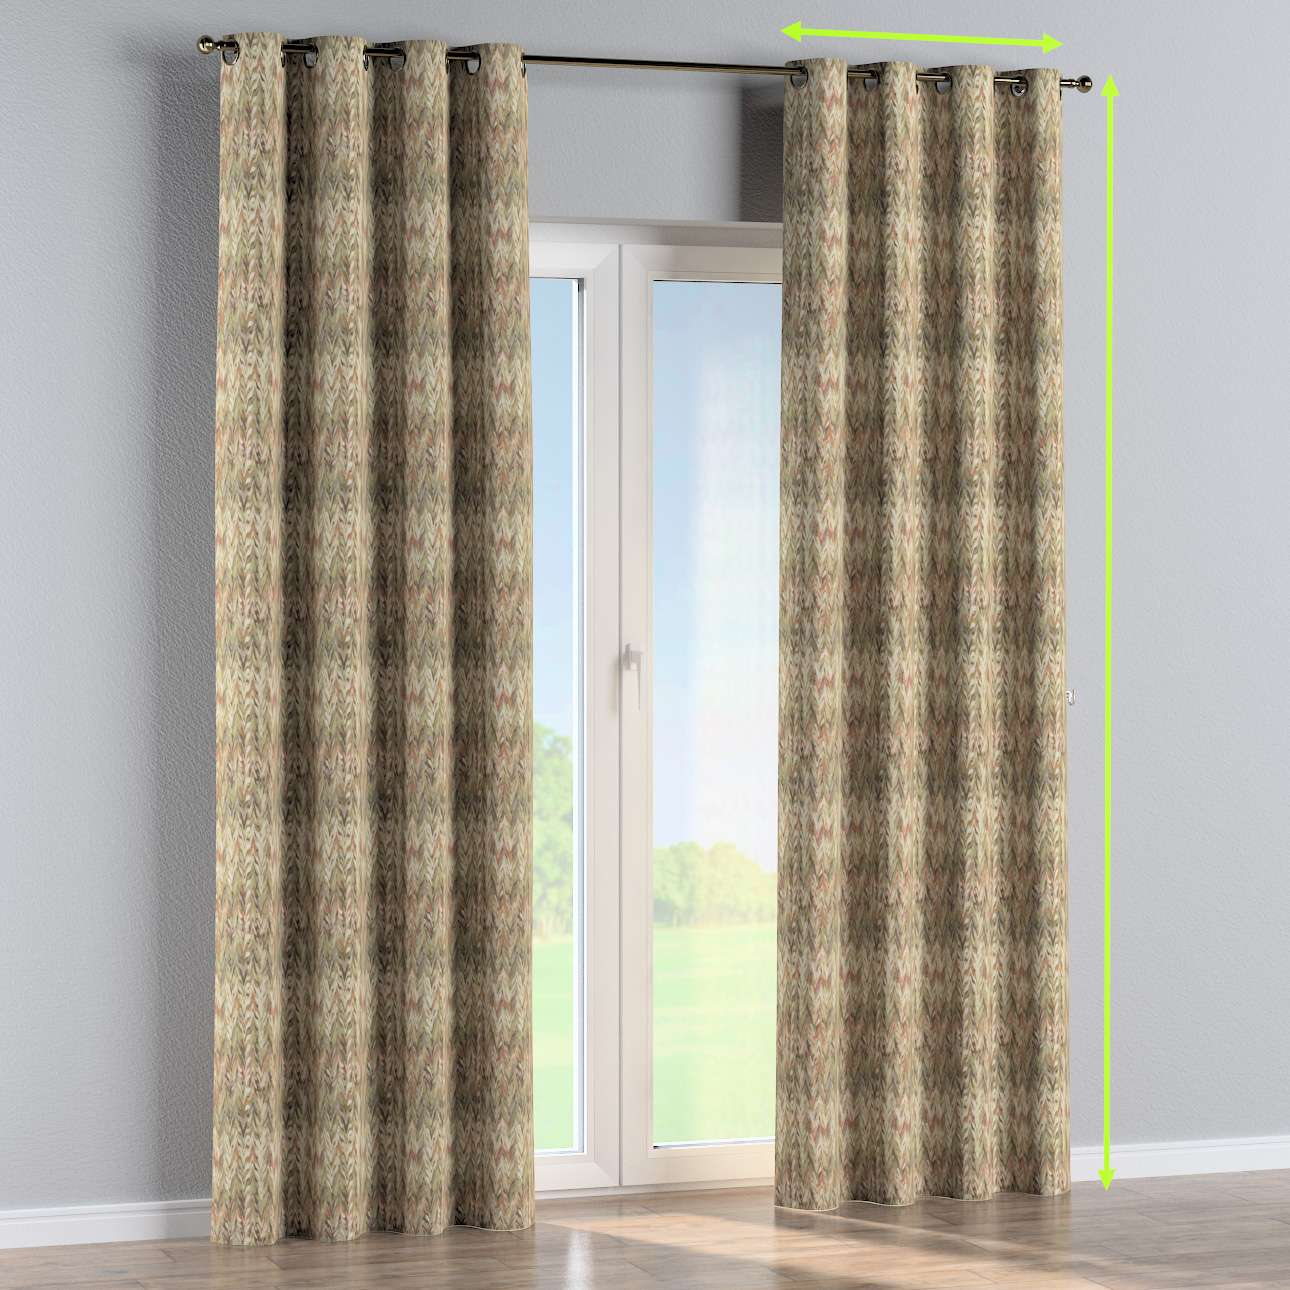 Eyelet curtain in collection SALE, fabric: 142-66